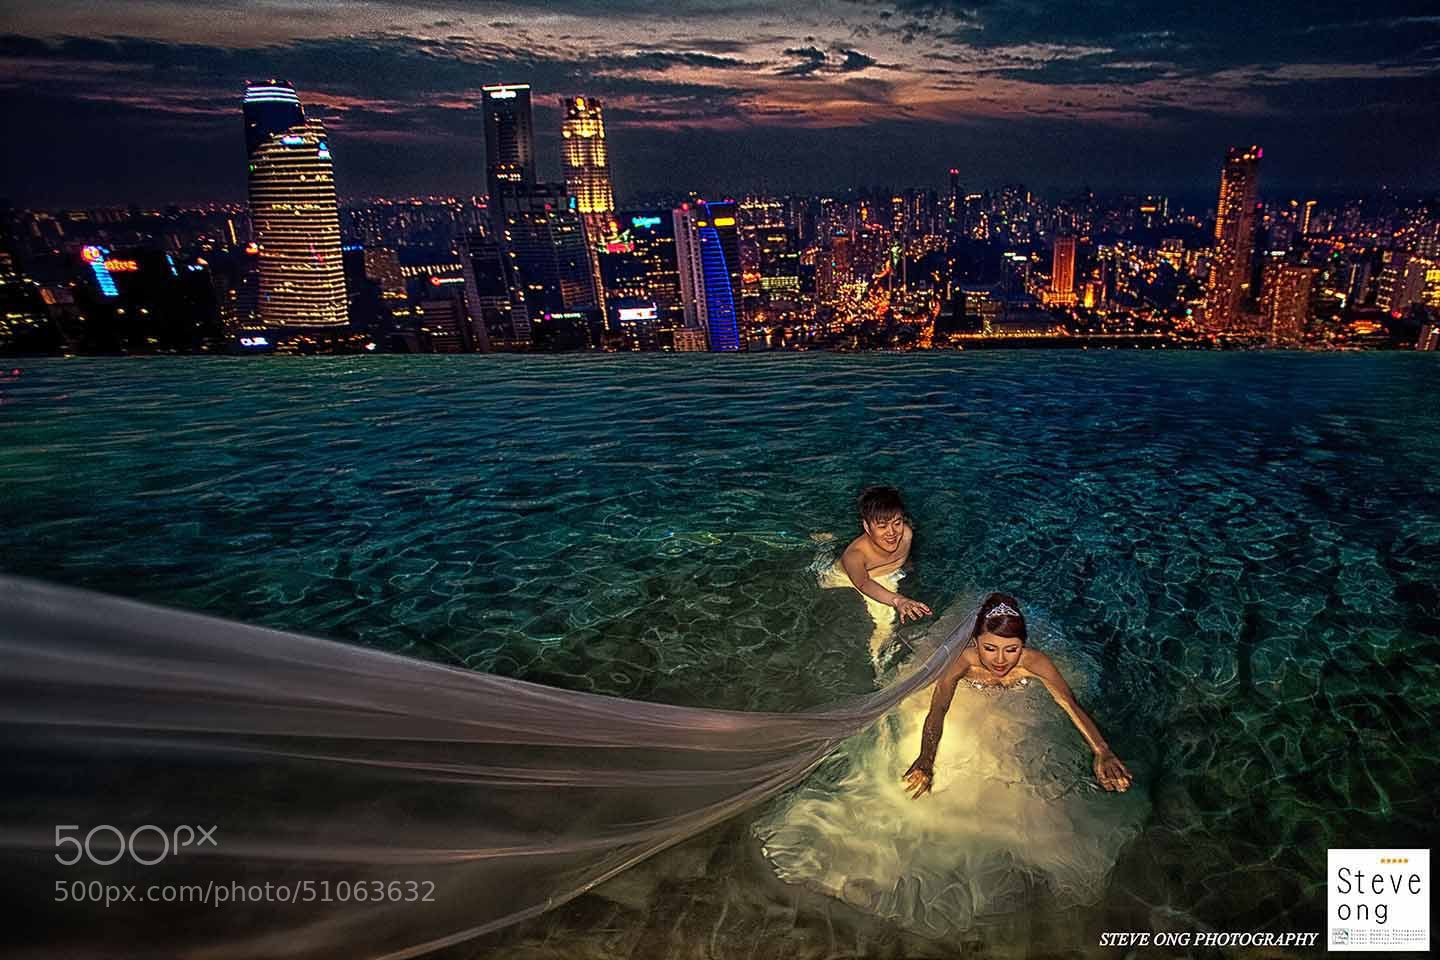 Photograph Love In Marina Bay Sands Swimming Pool Sg By Steve Ong On 500px